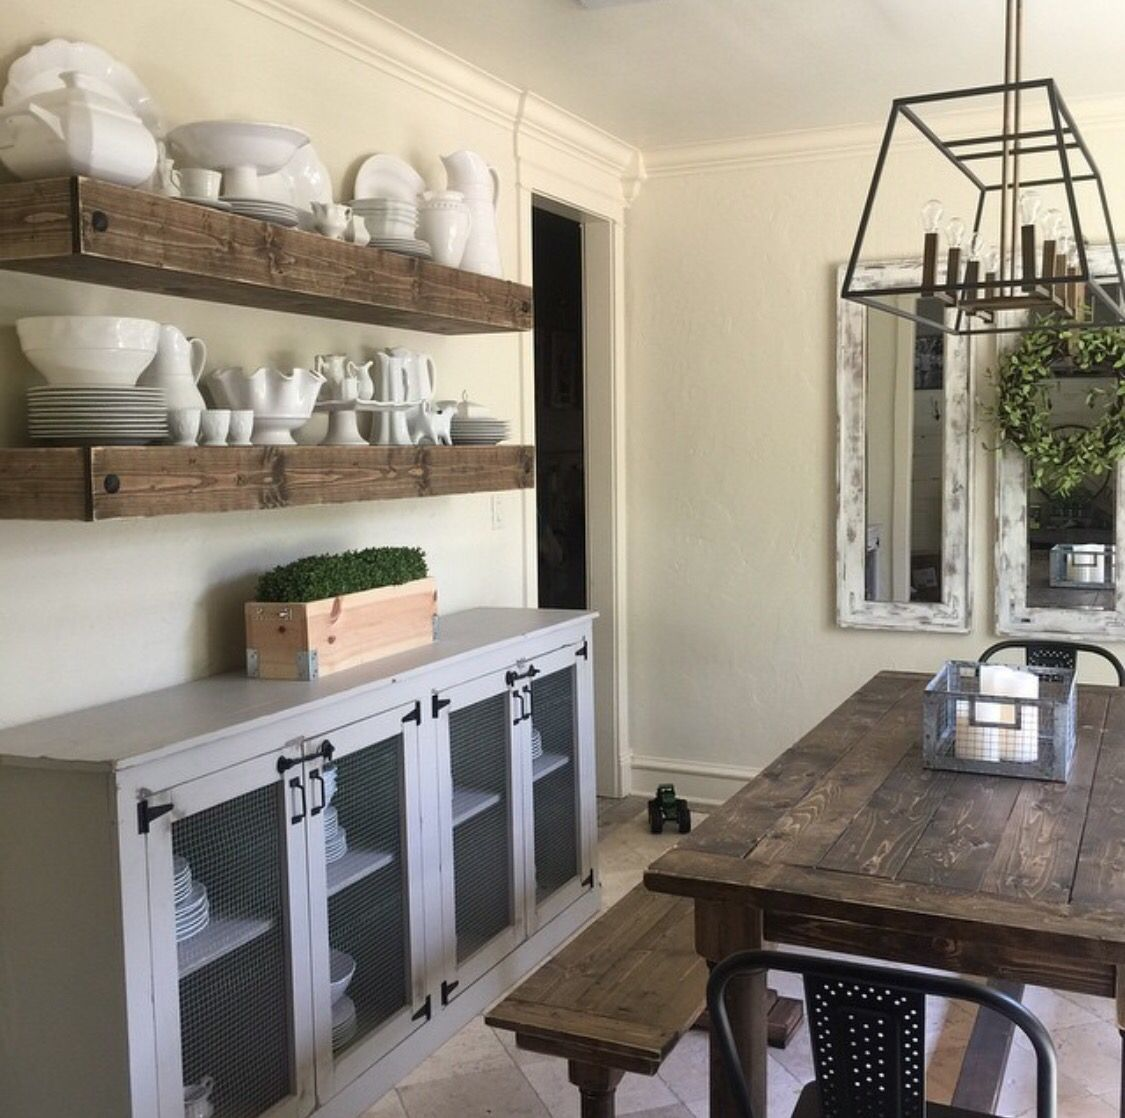 Diy Dining Room Storage Ideas: LOVE This Feed! Lots Of DIY Furniture And Project Ideas